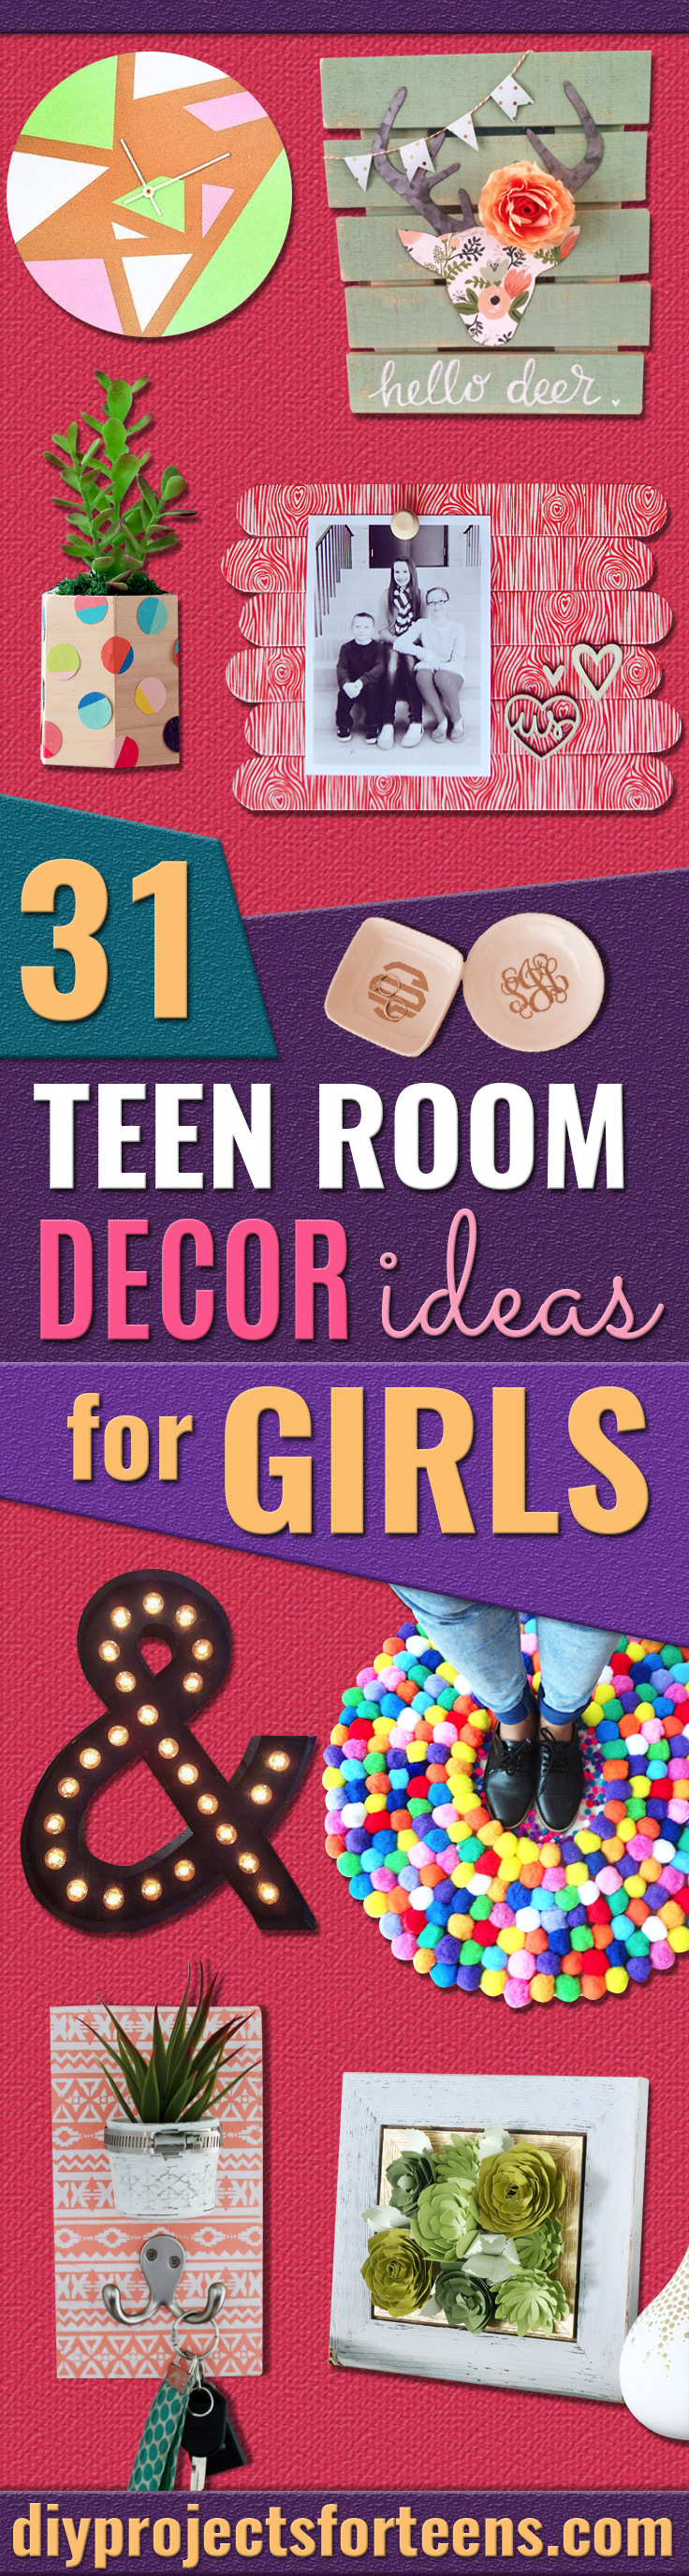 Bedroom decor ideas for girls - 31 Diy Teen Room Decor Ideas For Girls Creative Ideas For Teens Tweens And